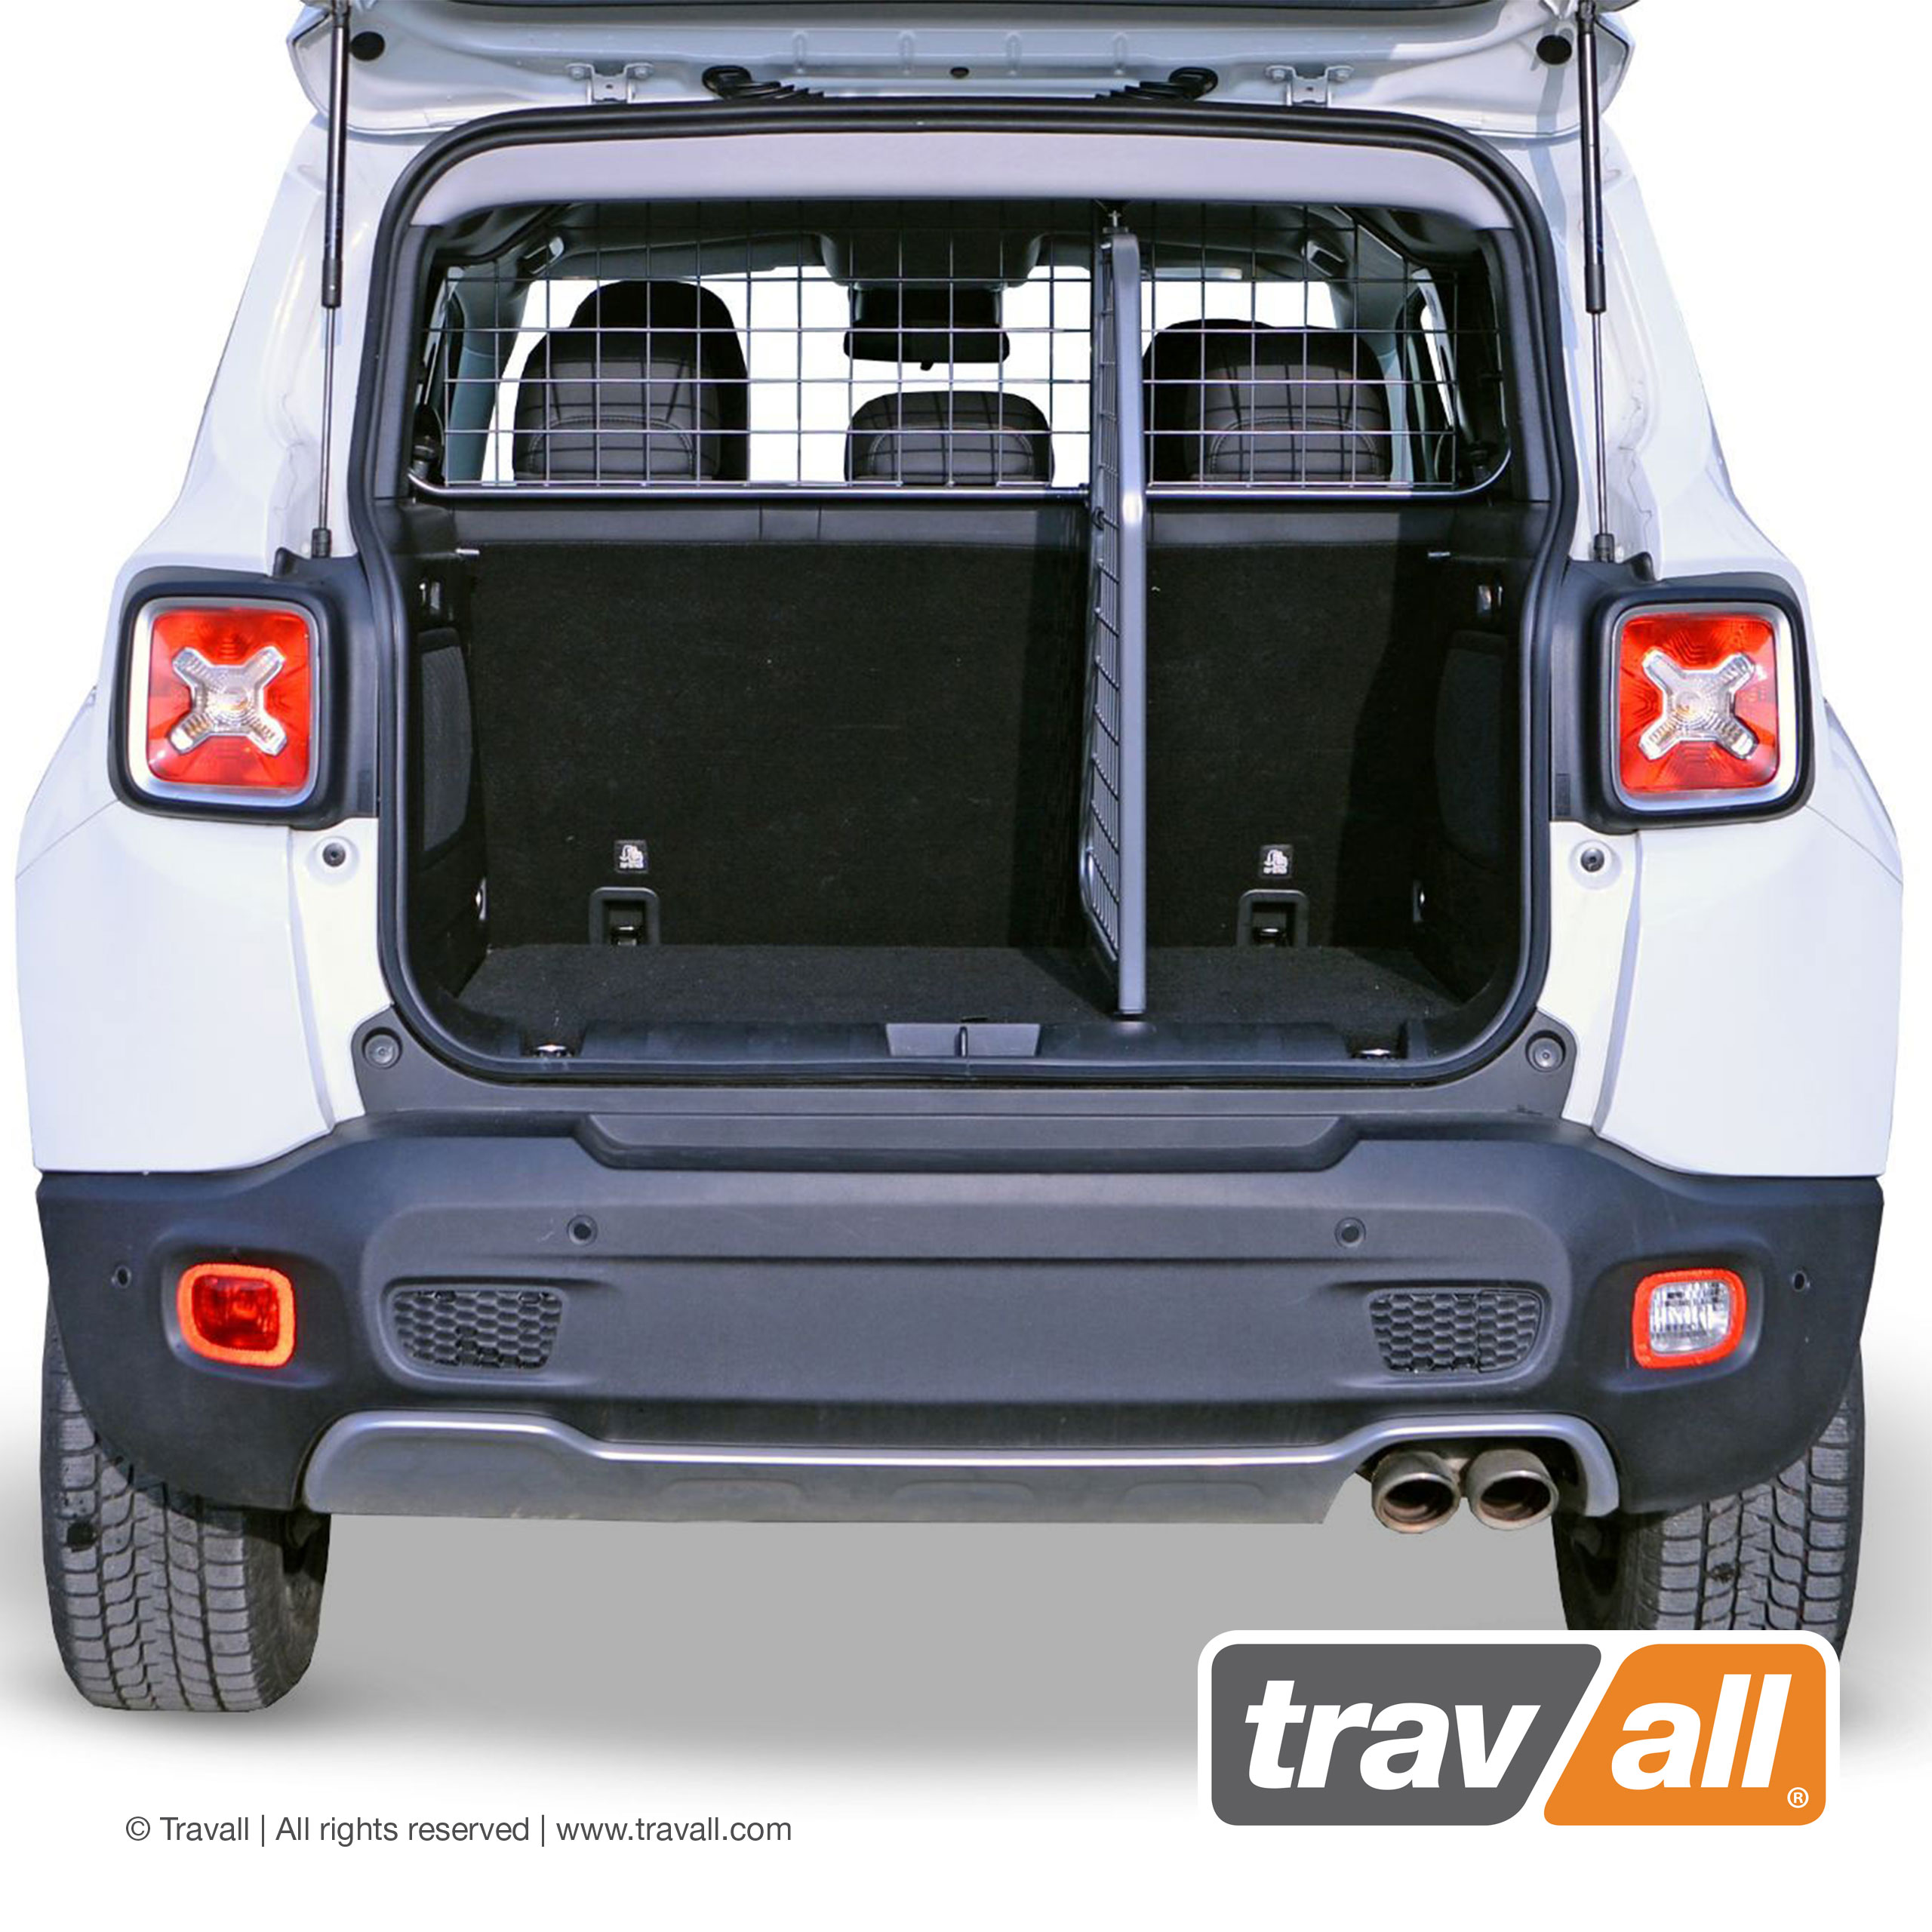 cloison de coffre pour jeep renegade 2014 meovia boutique d 39 accessoires automobiles. Black Bedroom Furniture Sets. Home Design Ideas